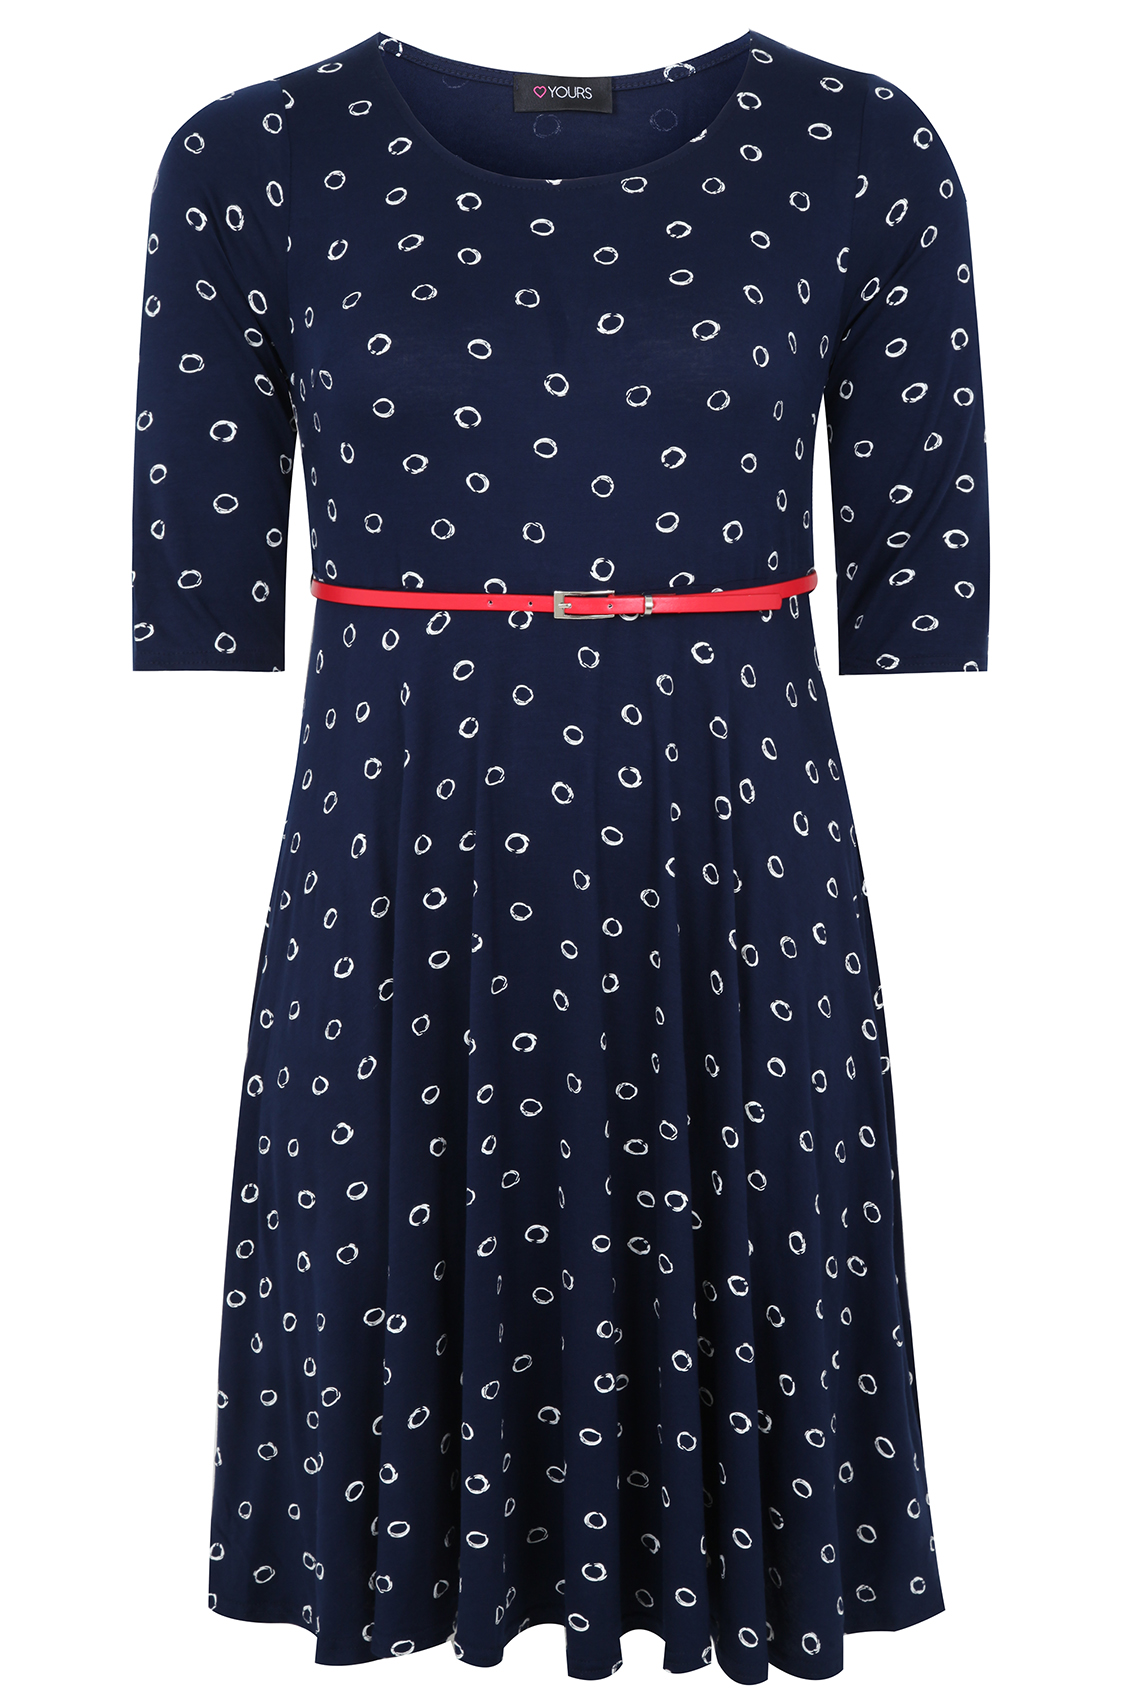 Cinderella Couture Baby Girls Navy White Polka Dot Hat Occasion Dress M. Sold by Sophias Style Boutique Inc. $ $ Calla Collection USA Little Girls Navy Polka Dot Chiffon Flower Girl Dress 2T Sold by Sophias Style Boutique Inc. $ $